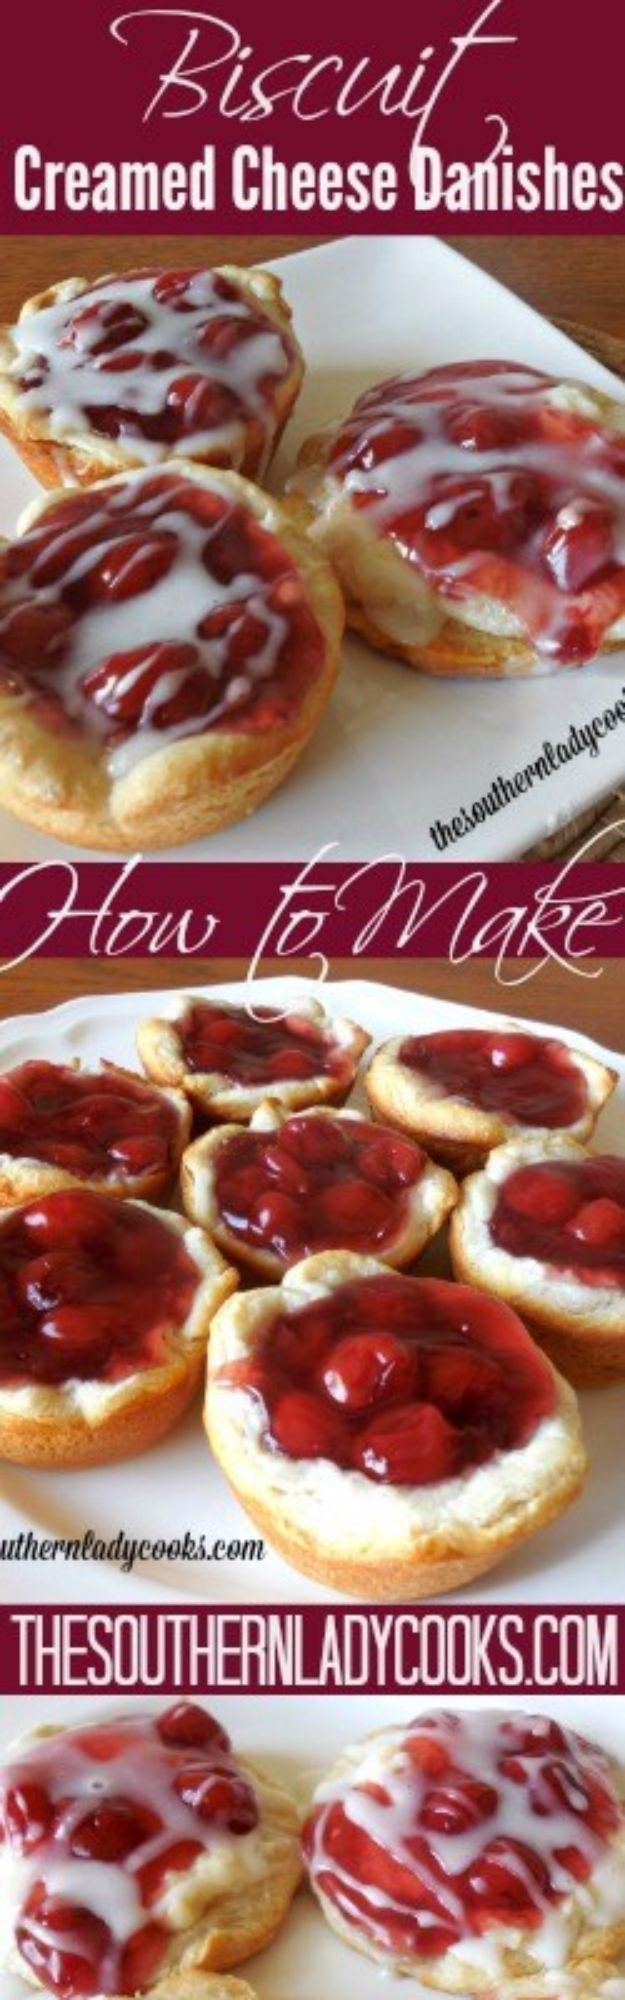 Best Canned Biscuit Recipes - Biscuit Creamed Cheese Danishes - Cool DIY Recipe Ideas You Can Make With A Can of Biscuits - Easy Breakfast, Lunch, Dinner and Desserts You Can Make From Pillsbury Pull Apart Biscuits - Garlic, Sour Cream, Ground Beef, Sweet and Savory, Ideas with Cheese - Delicious Meals on A Budget With Step by Step Tutorials http://diyjoy.com/best-recipes-canned-biscuits